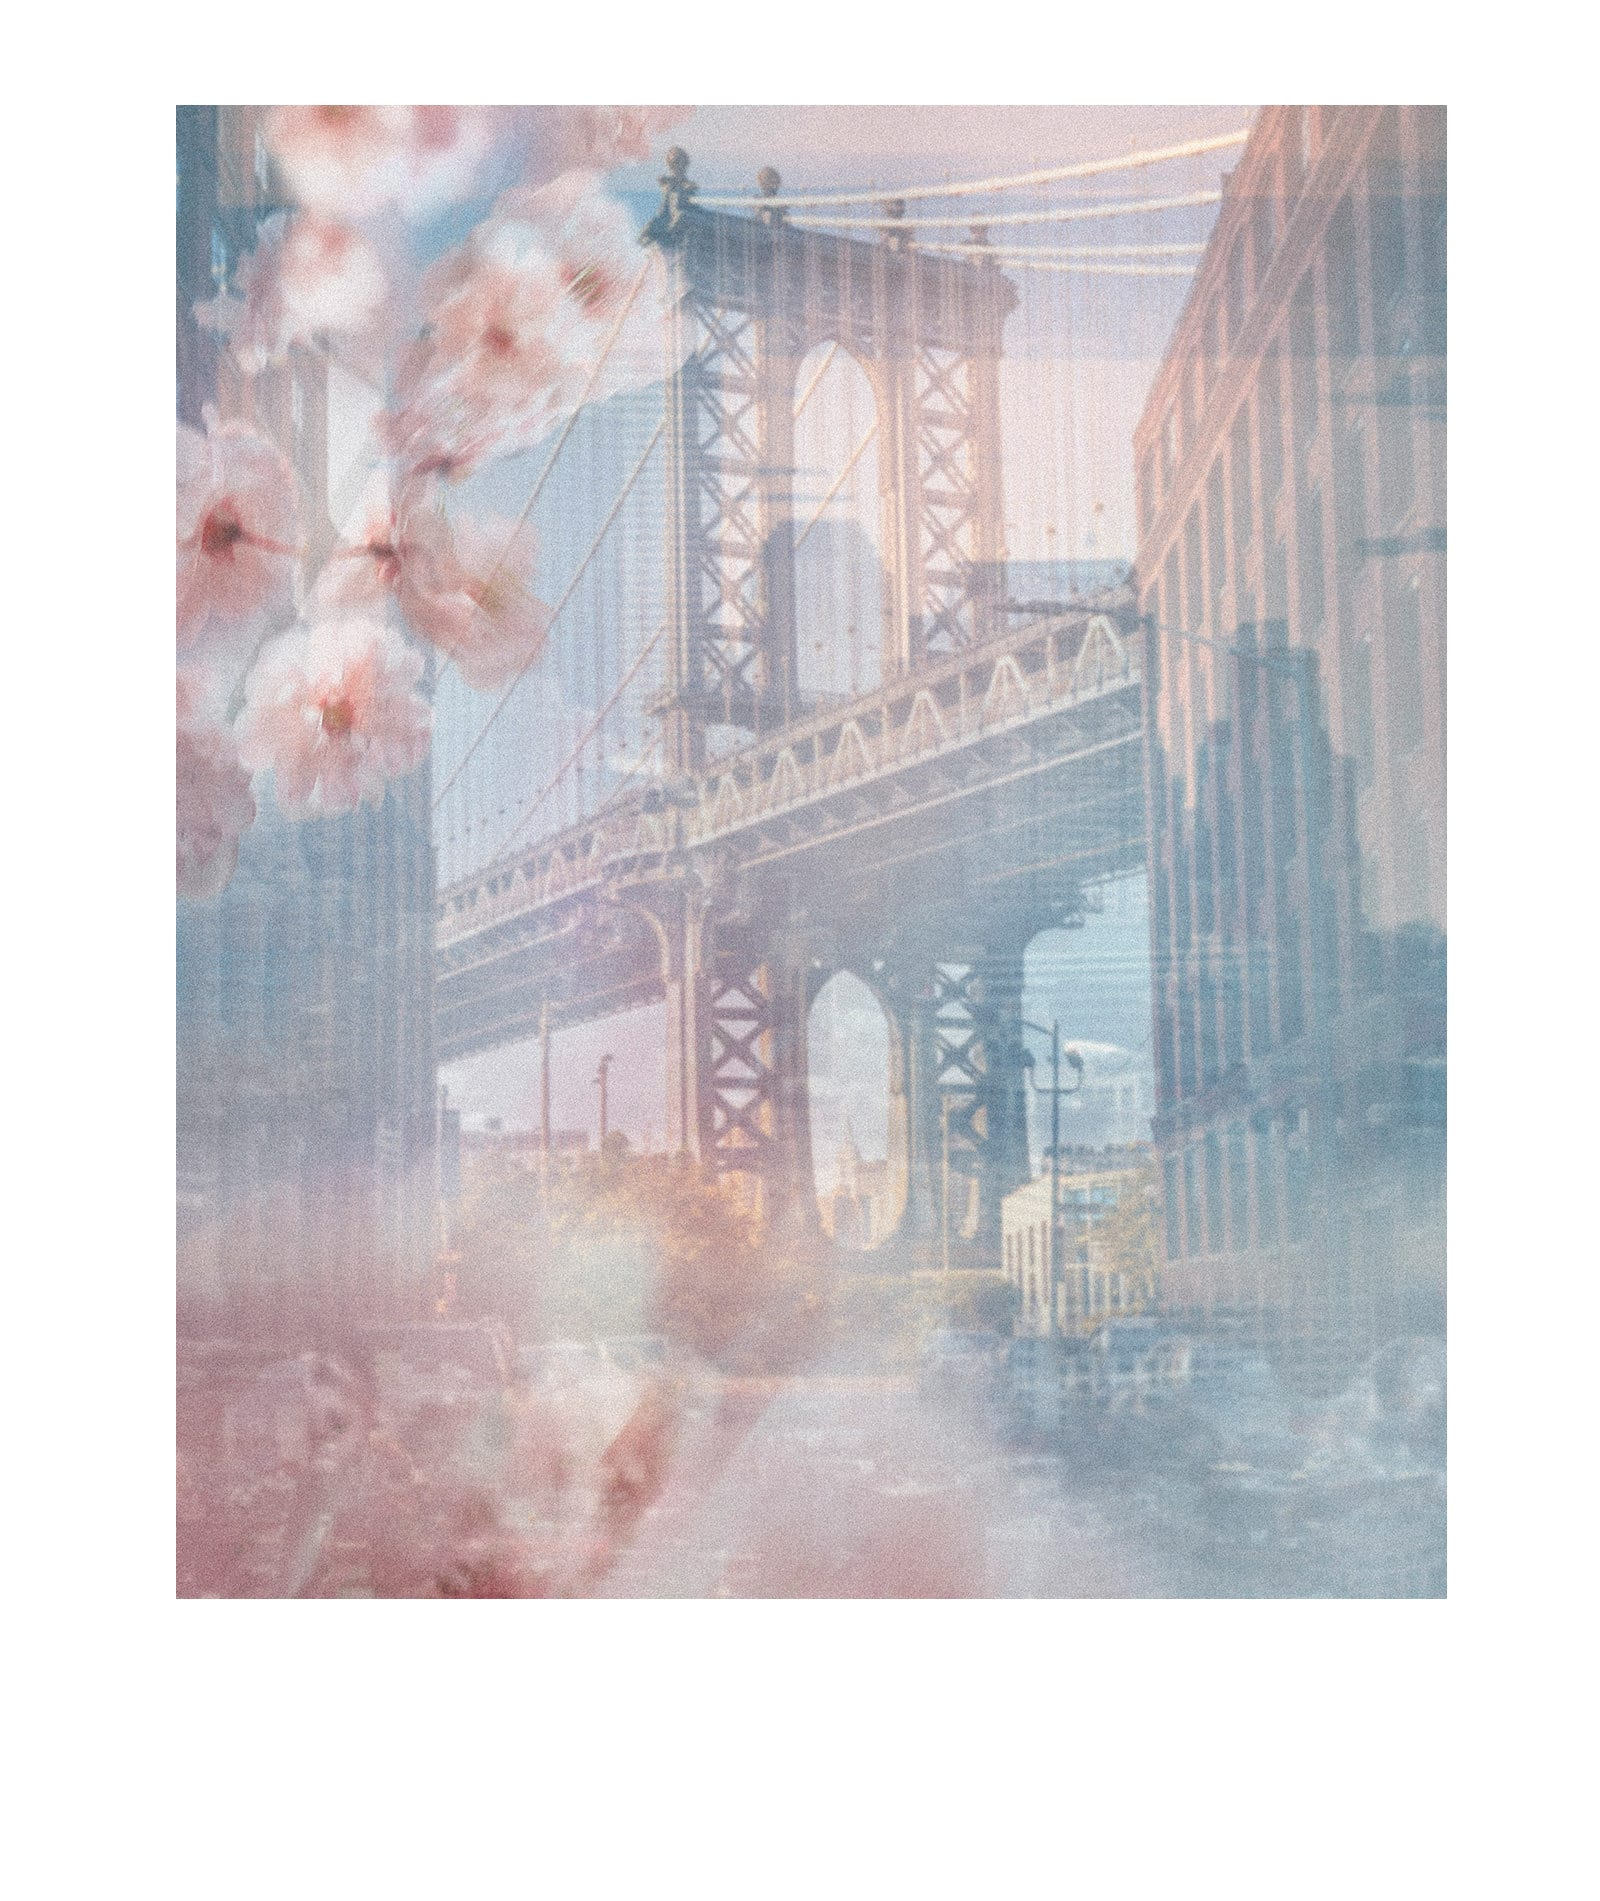 Un collage photo superpose des fleurs de cerisier floues sur une photo couleur du pont de Brooklyn.